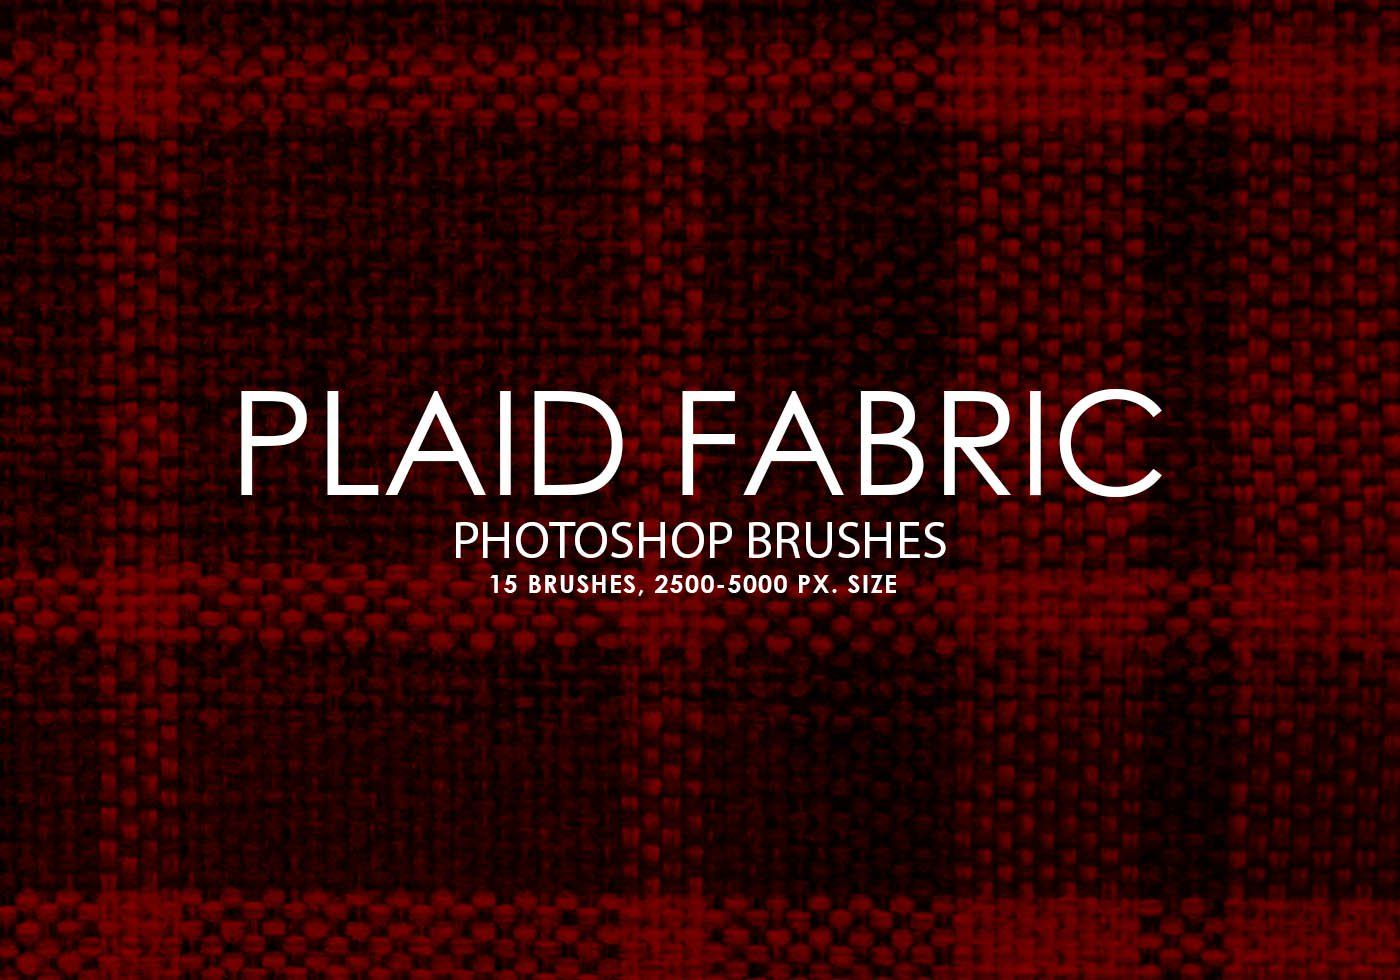 Pack contains 15 high qualityplaid fabric brushes, 2500